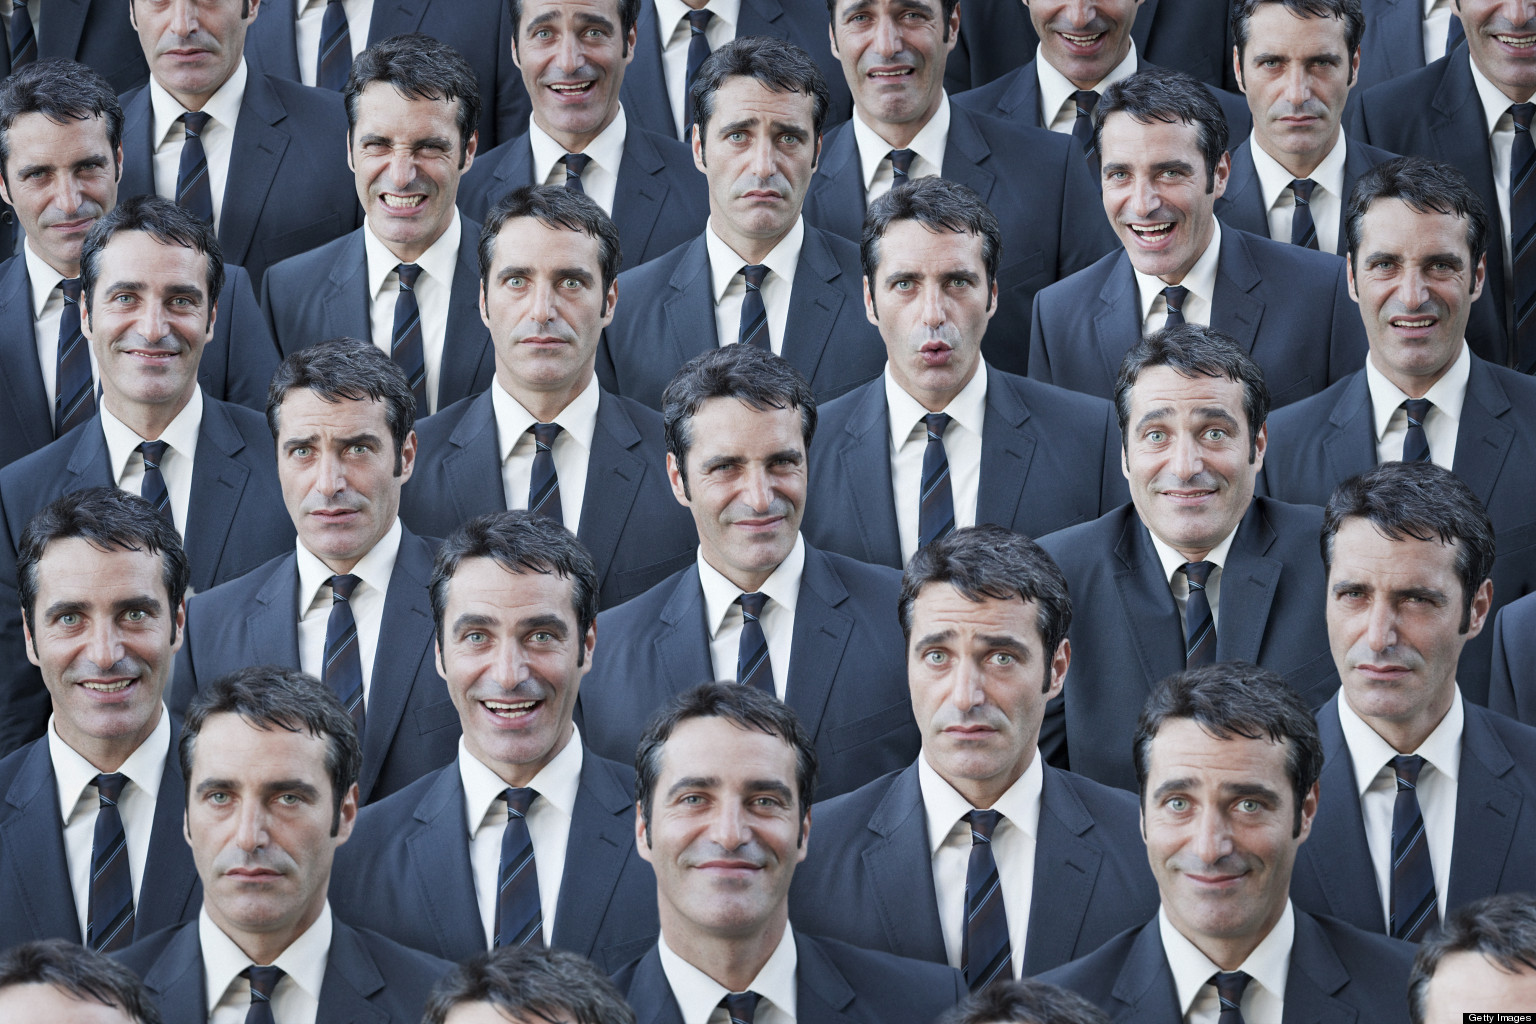 Crowd of businessmen with multiple expressions